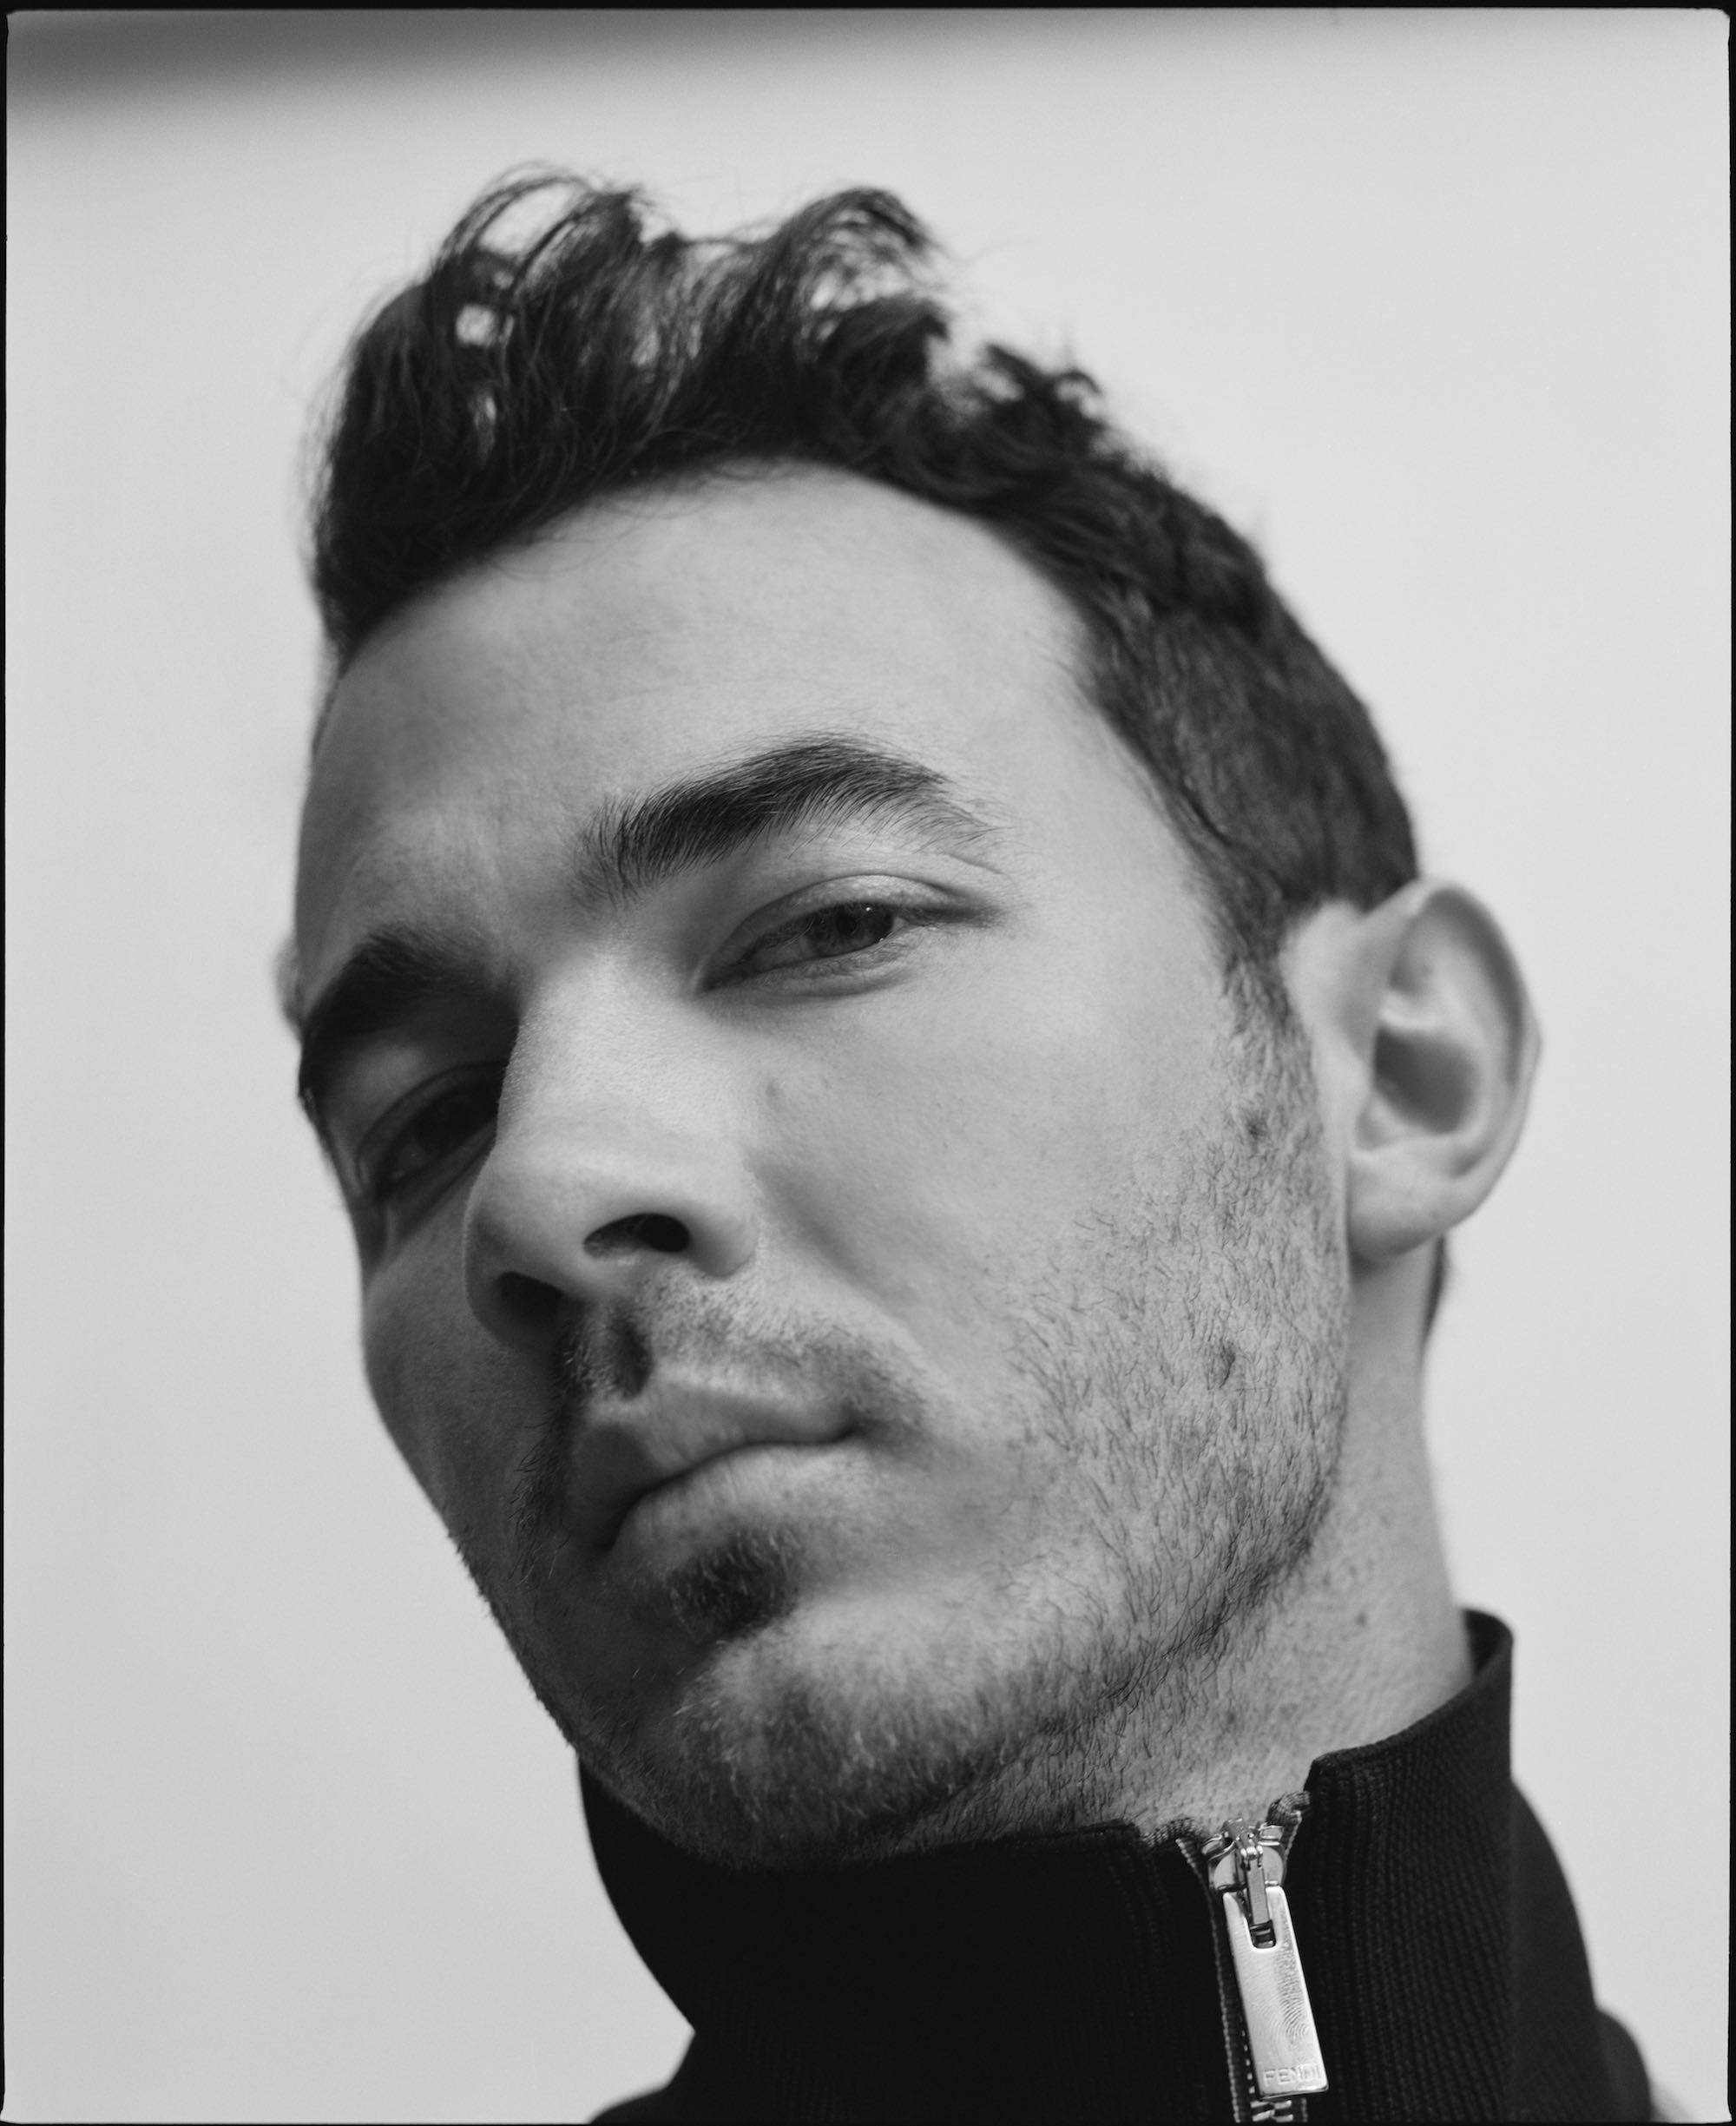 Jonas Brothers for the Summer 2019 cover of Wonderland Nick Jonas black and white closeup